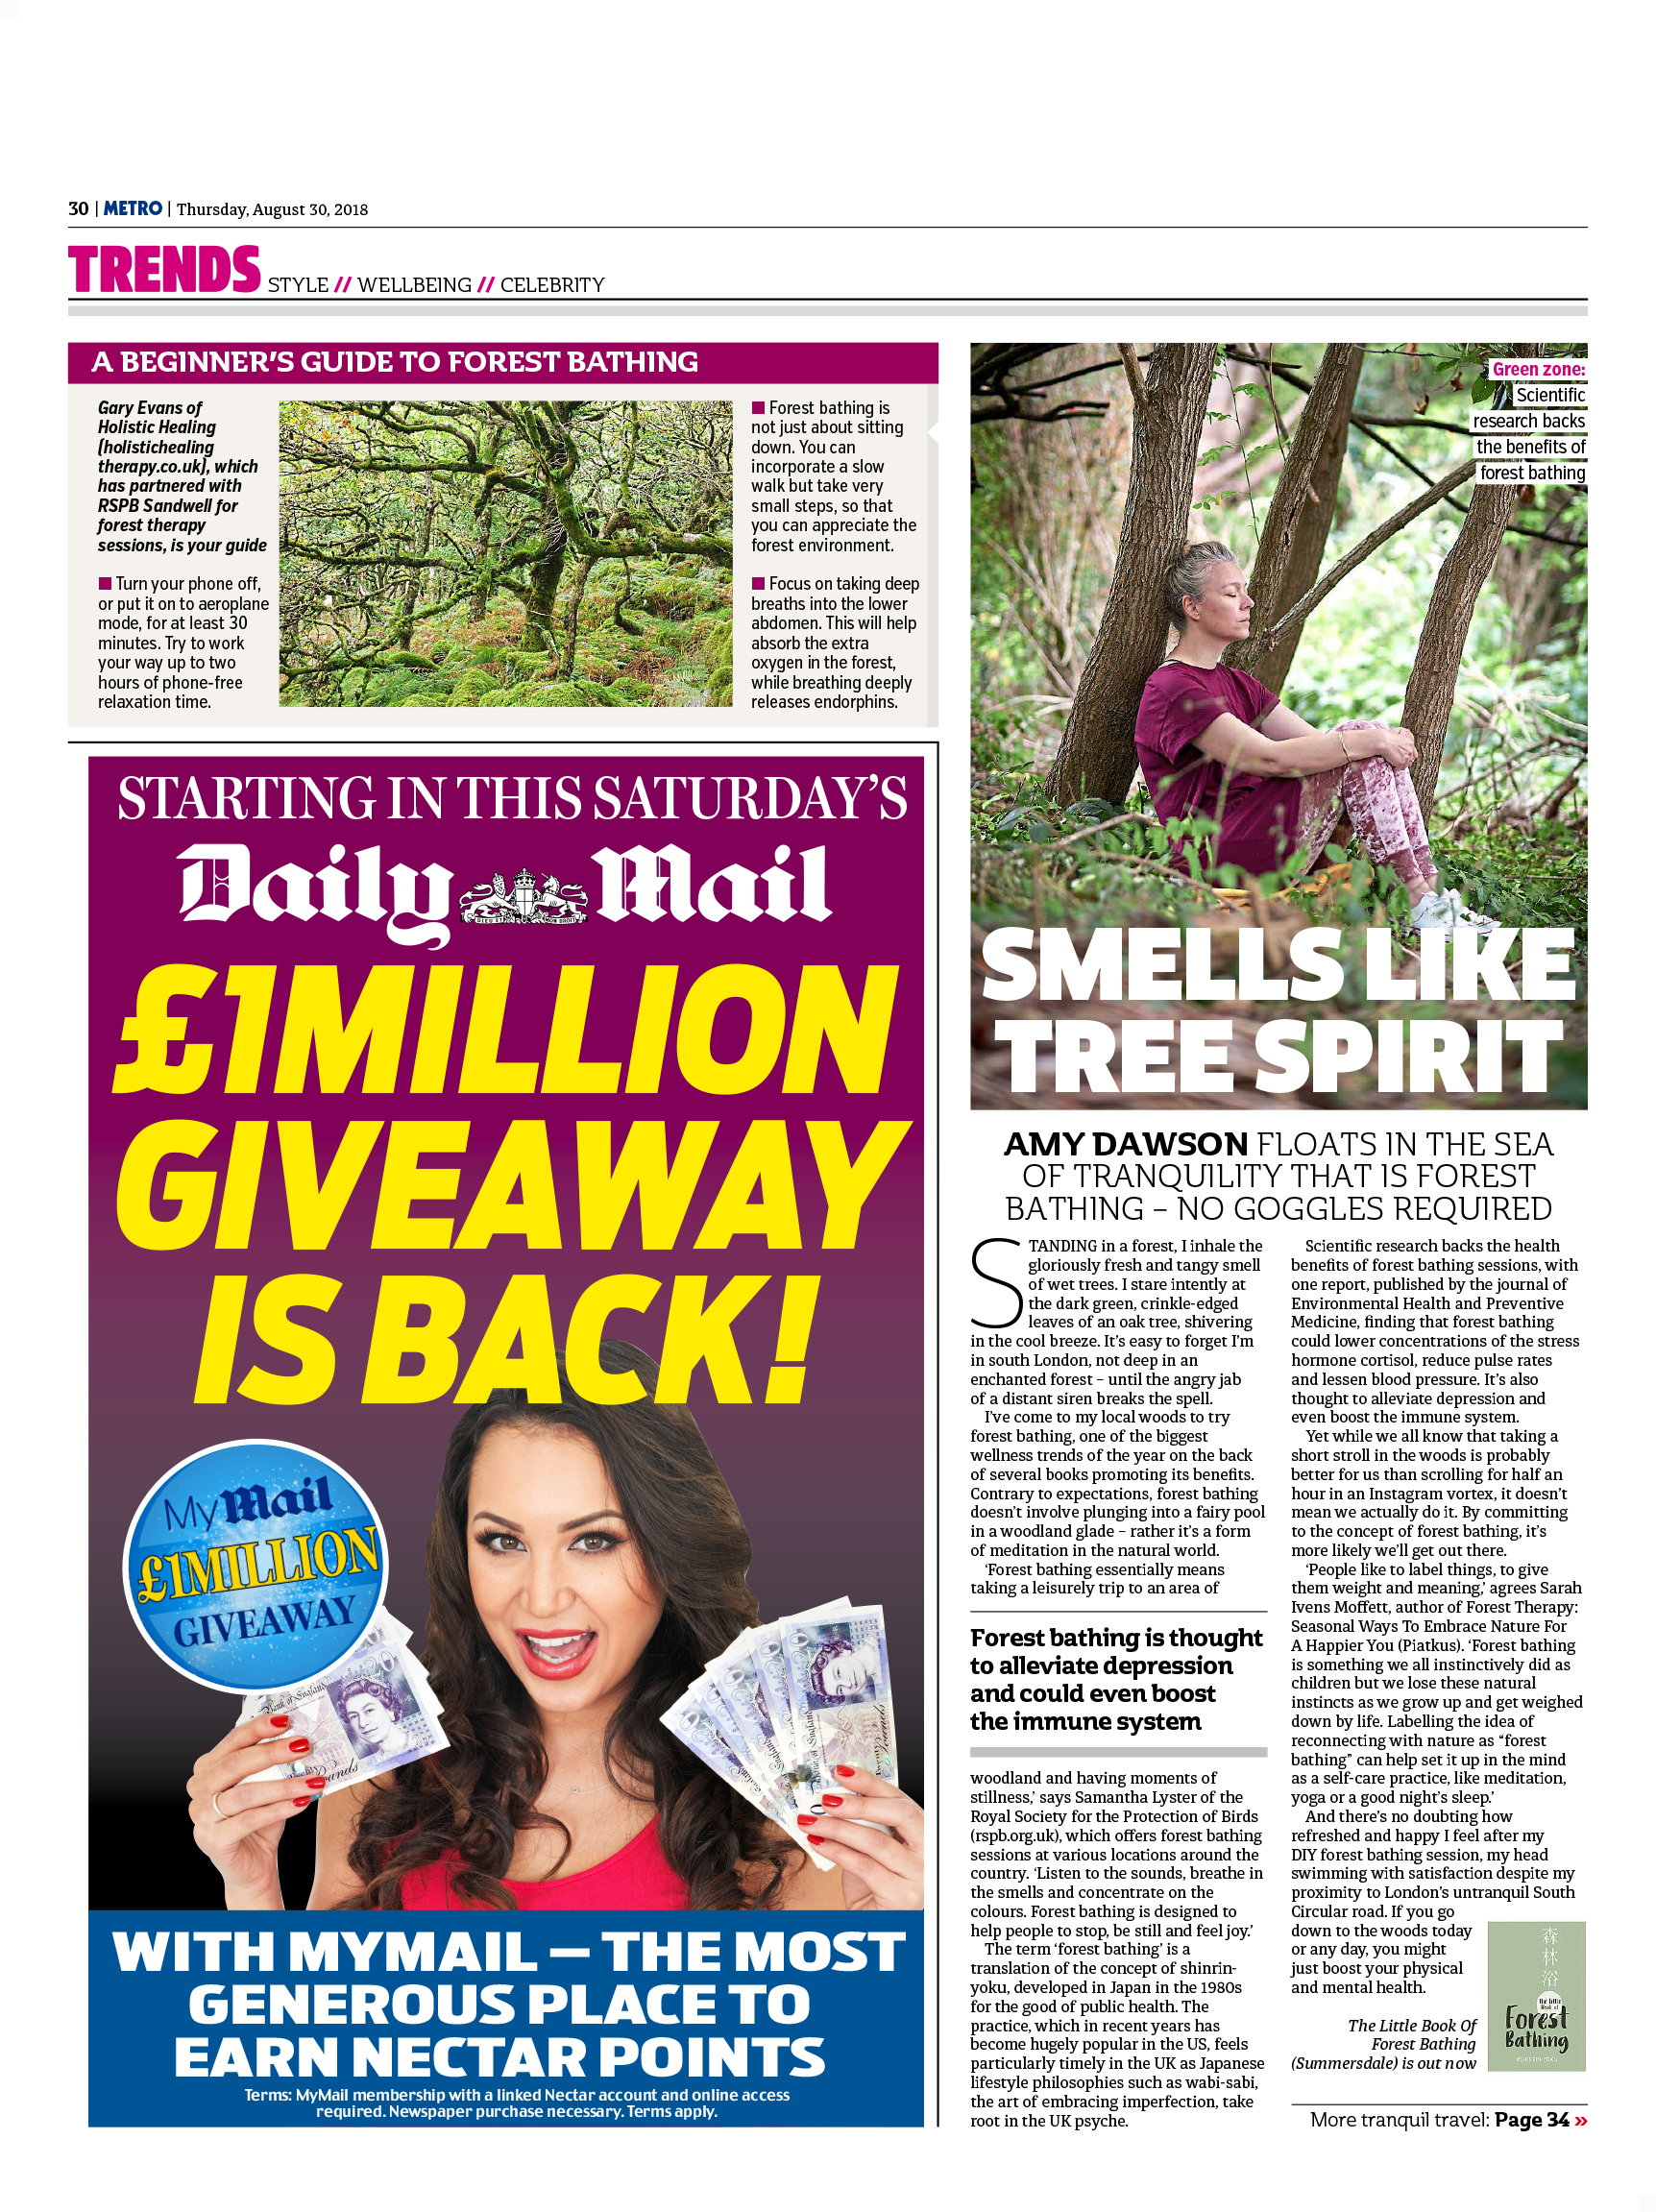 Forest bathing: Why you should branch out and try it (Metro, 30th Aug 2018)